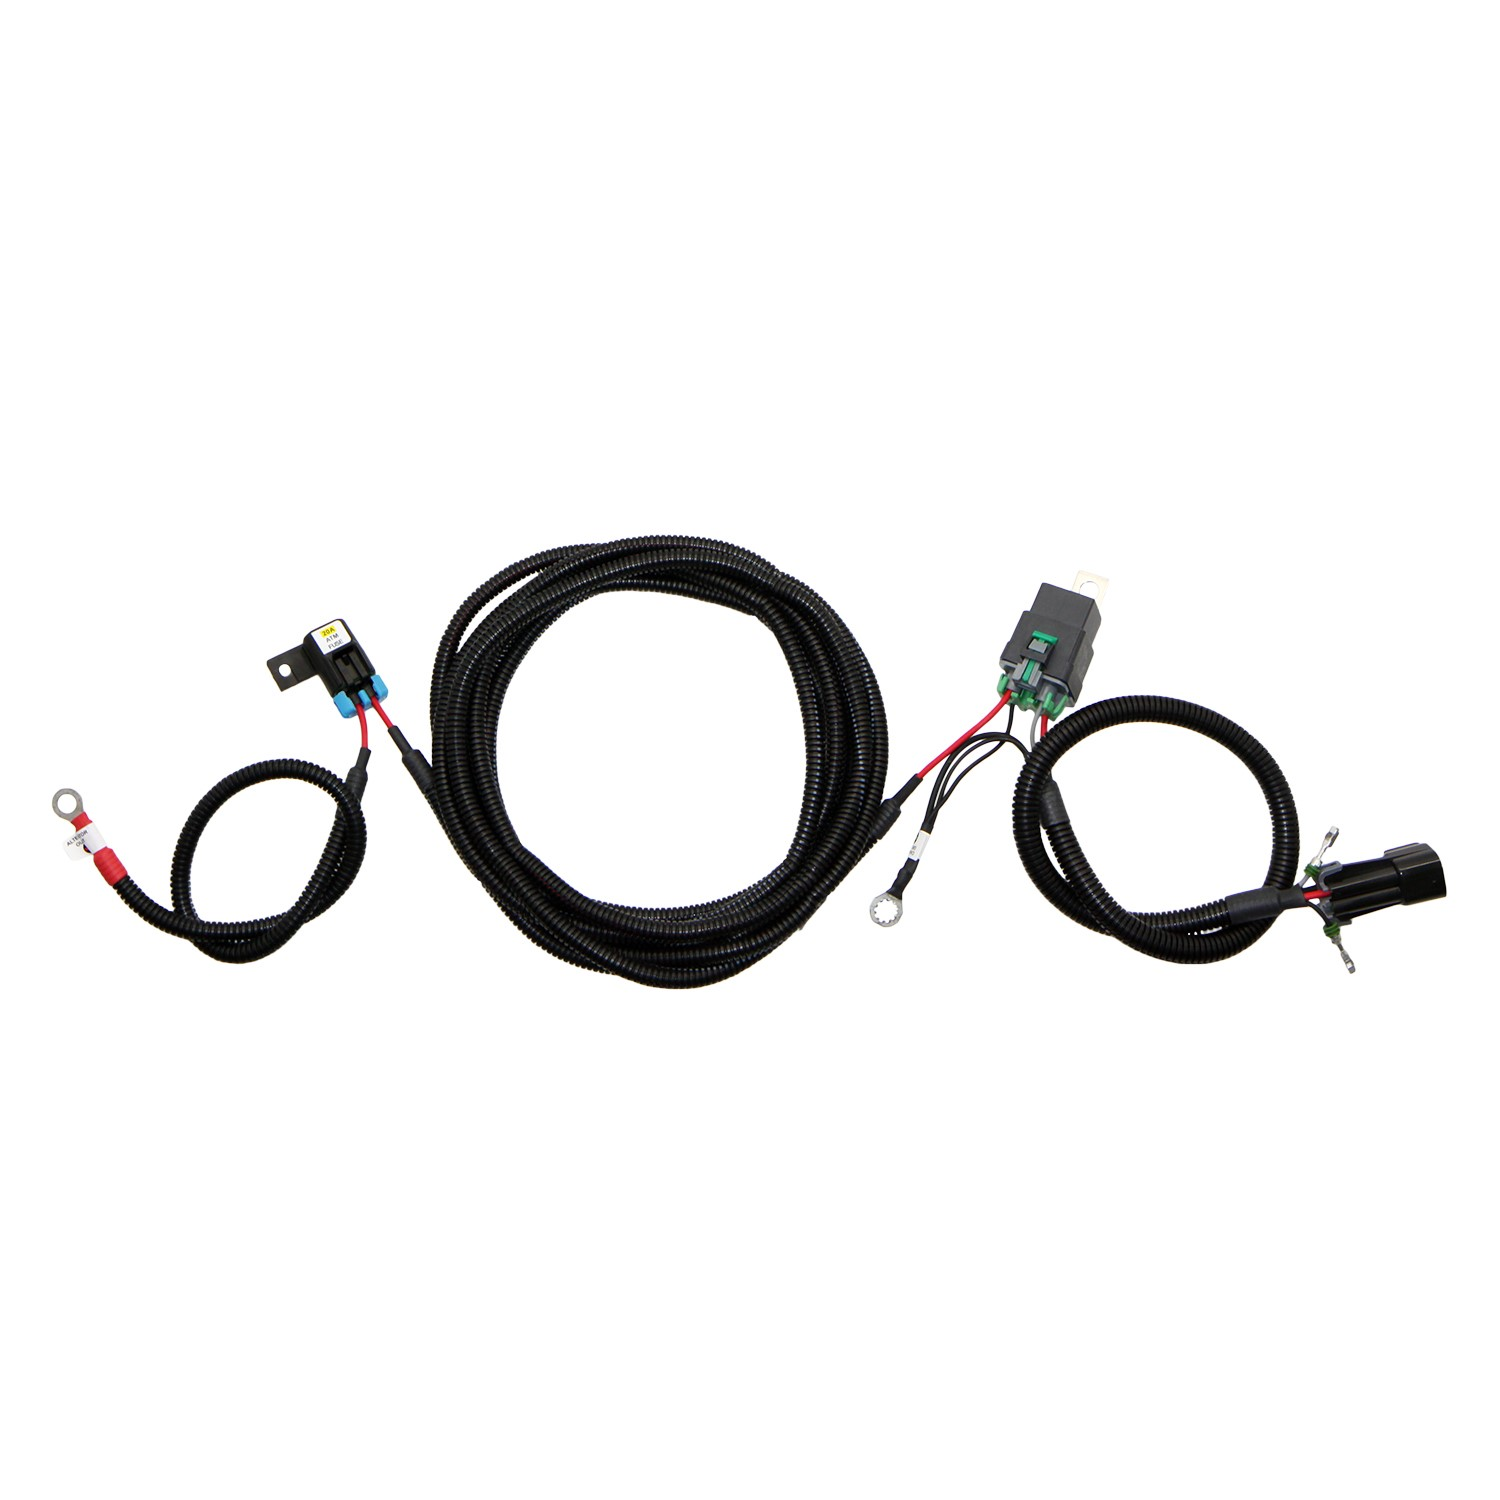 w-body 97  fuel pump wiring harness  fpwh-025   fuel pump   upgrade harnesses